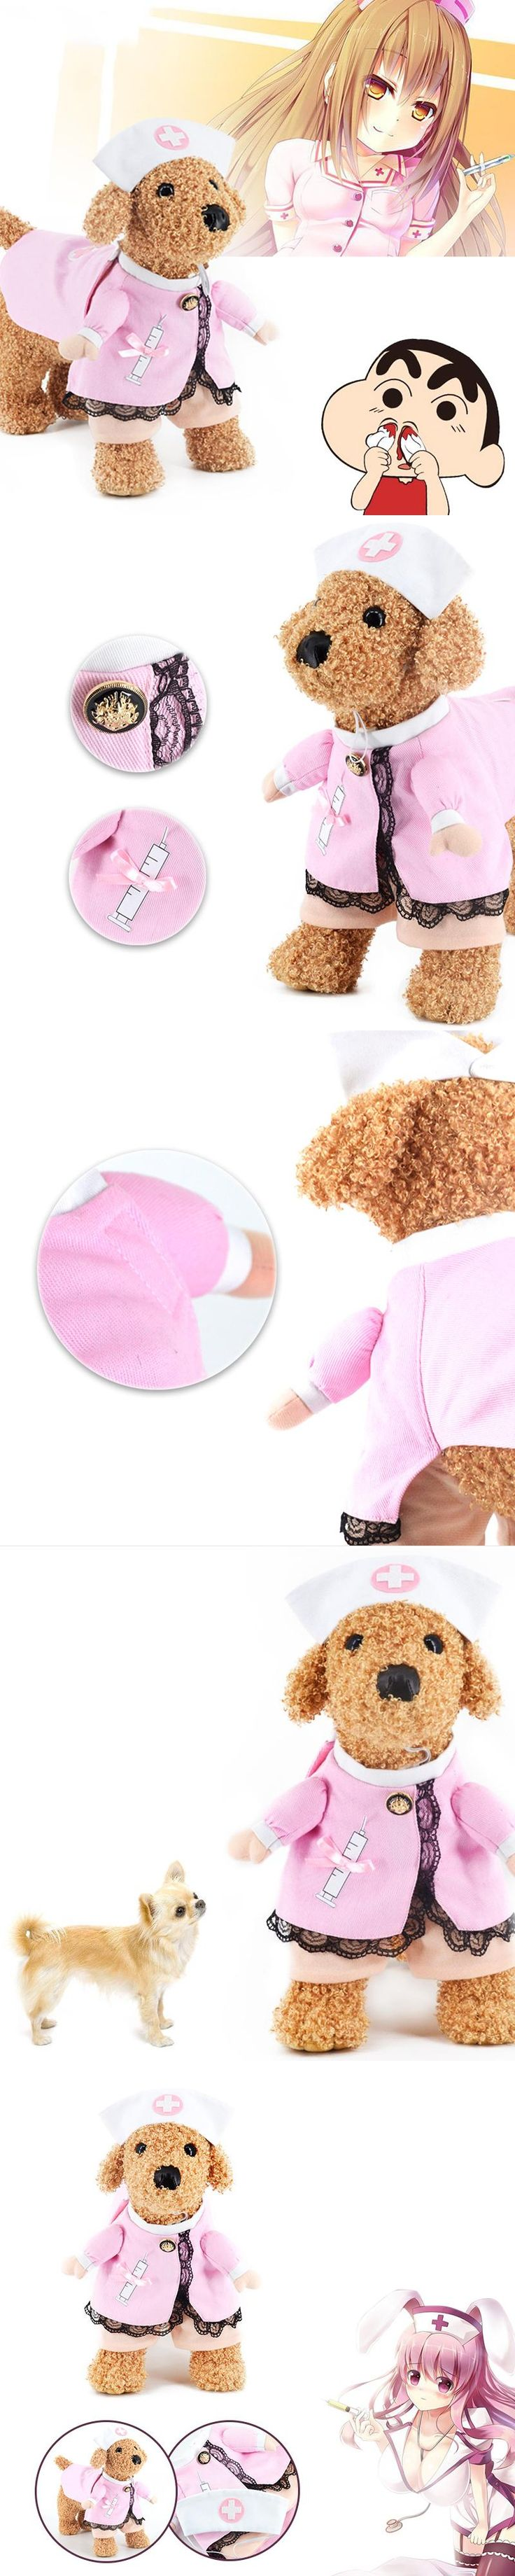 Beishuo pet dog clothes for cosplay sexy nurse dress for small dogs and cats pink fashiondresses 2017 hot sale in aliexpress